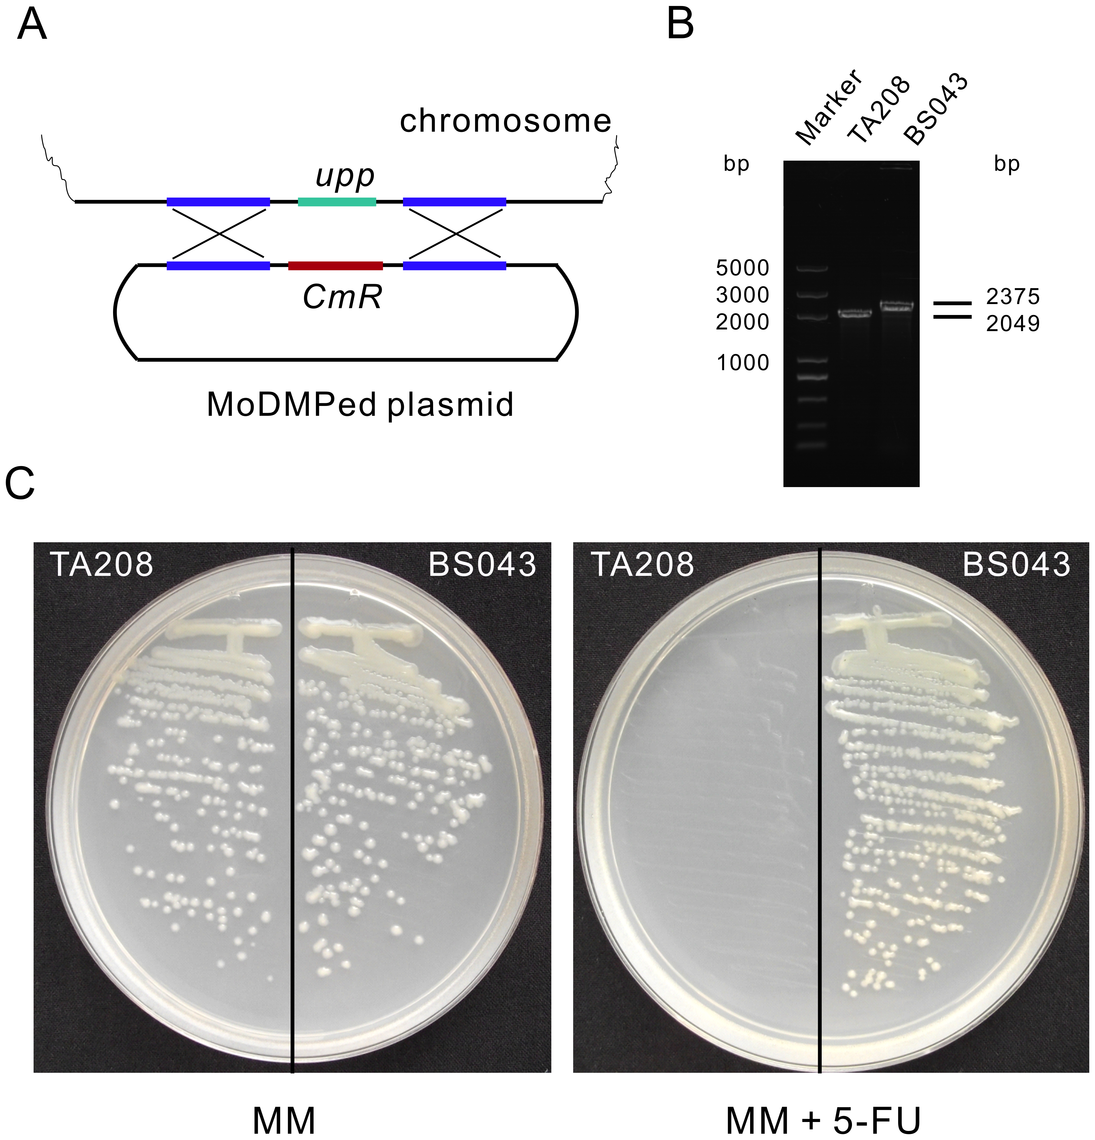 Inactivation of <i>upp</i> in <i>B. amyloliquefaciens</i> TA208 using an integration plasmid that underwent the MoDMP pipeline.